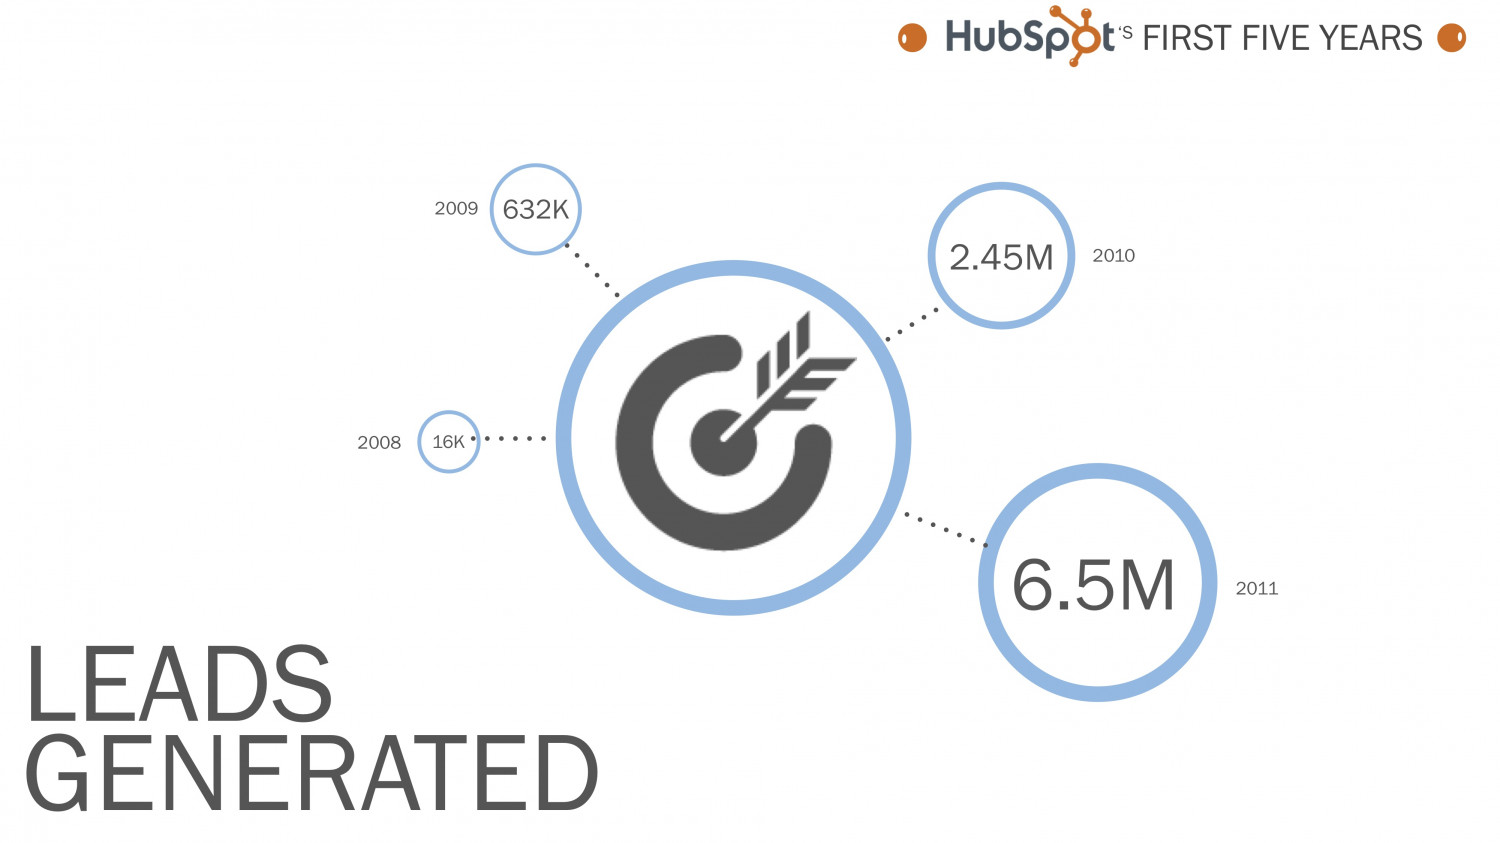 HubSpot Leads Generated Infographic